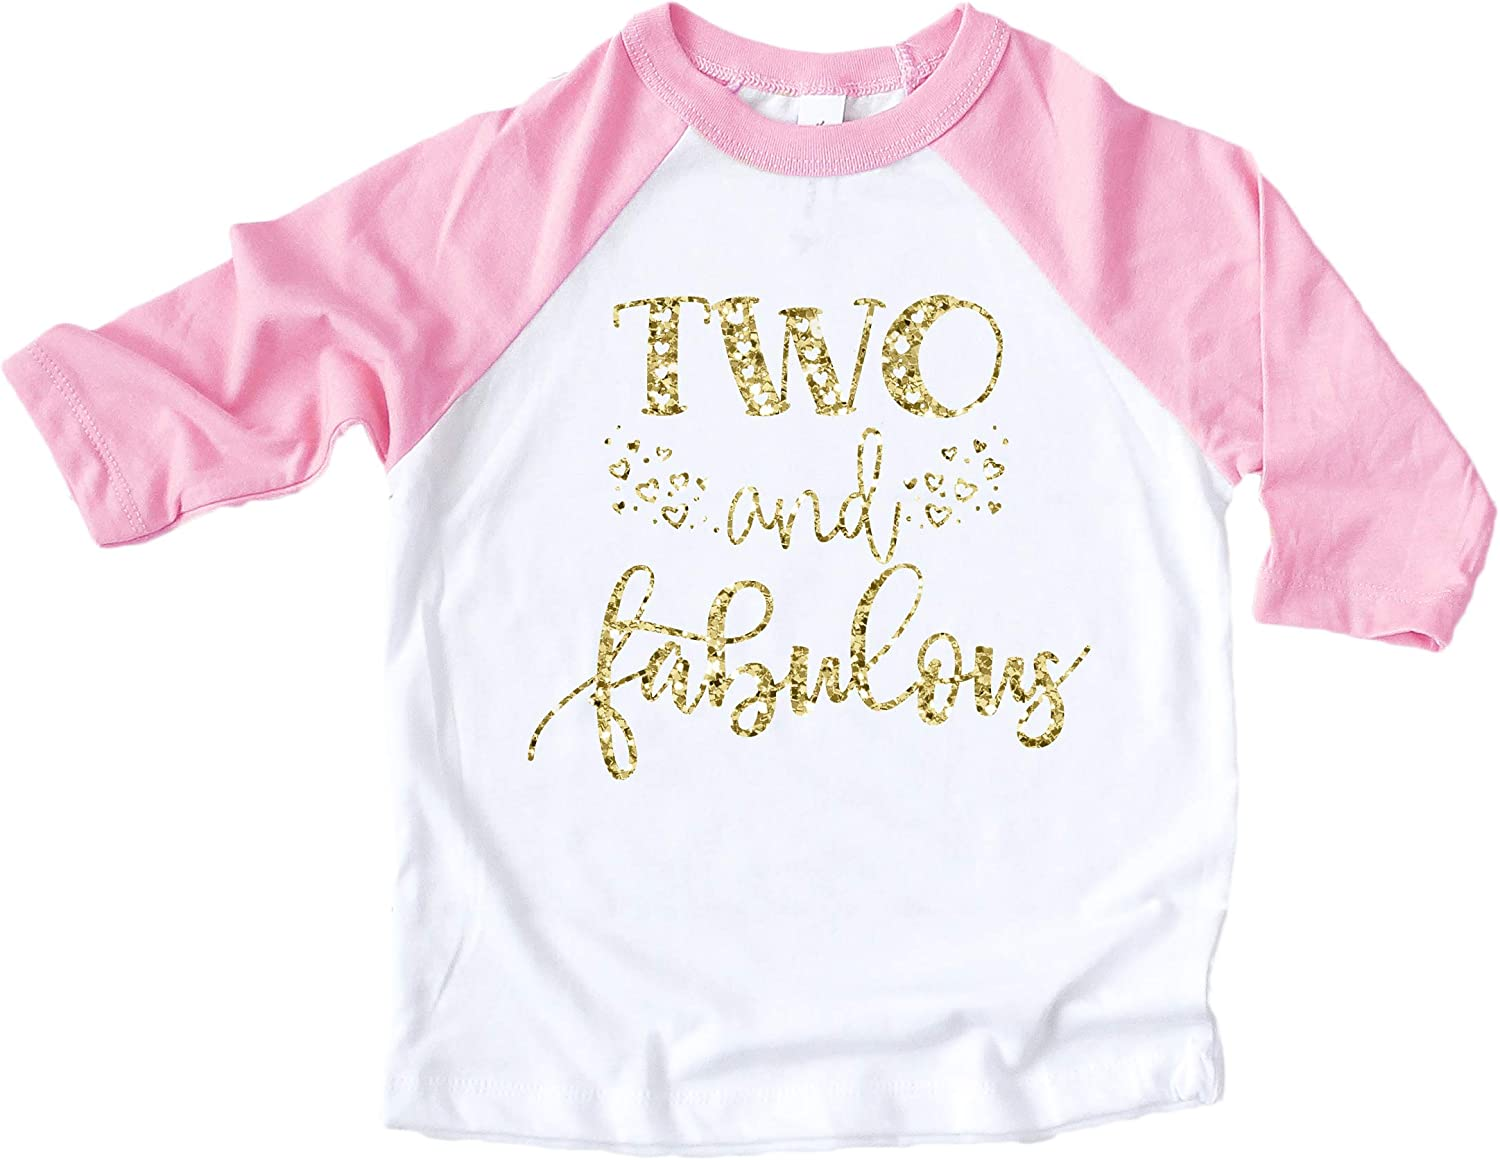 Olive Loves Apple Two and Fabulous Shirt Glitter Gold Two and Fabulous Hearts Pink Raglan Girls 2nd Birthday Shirt